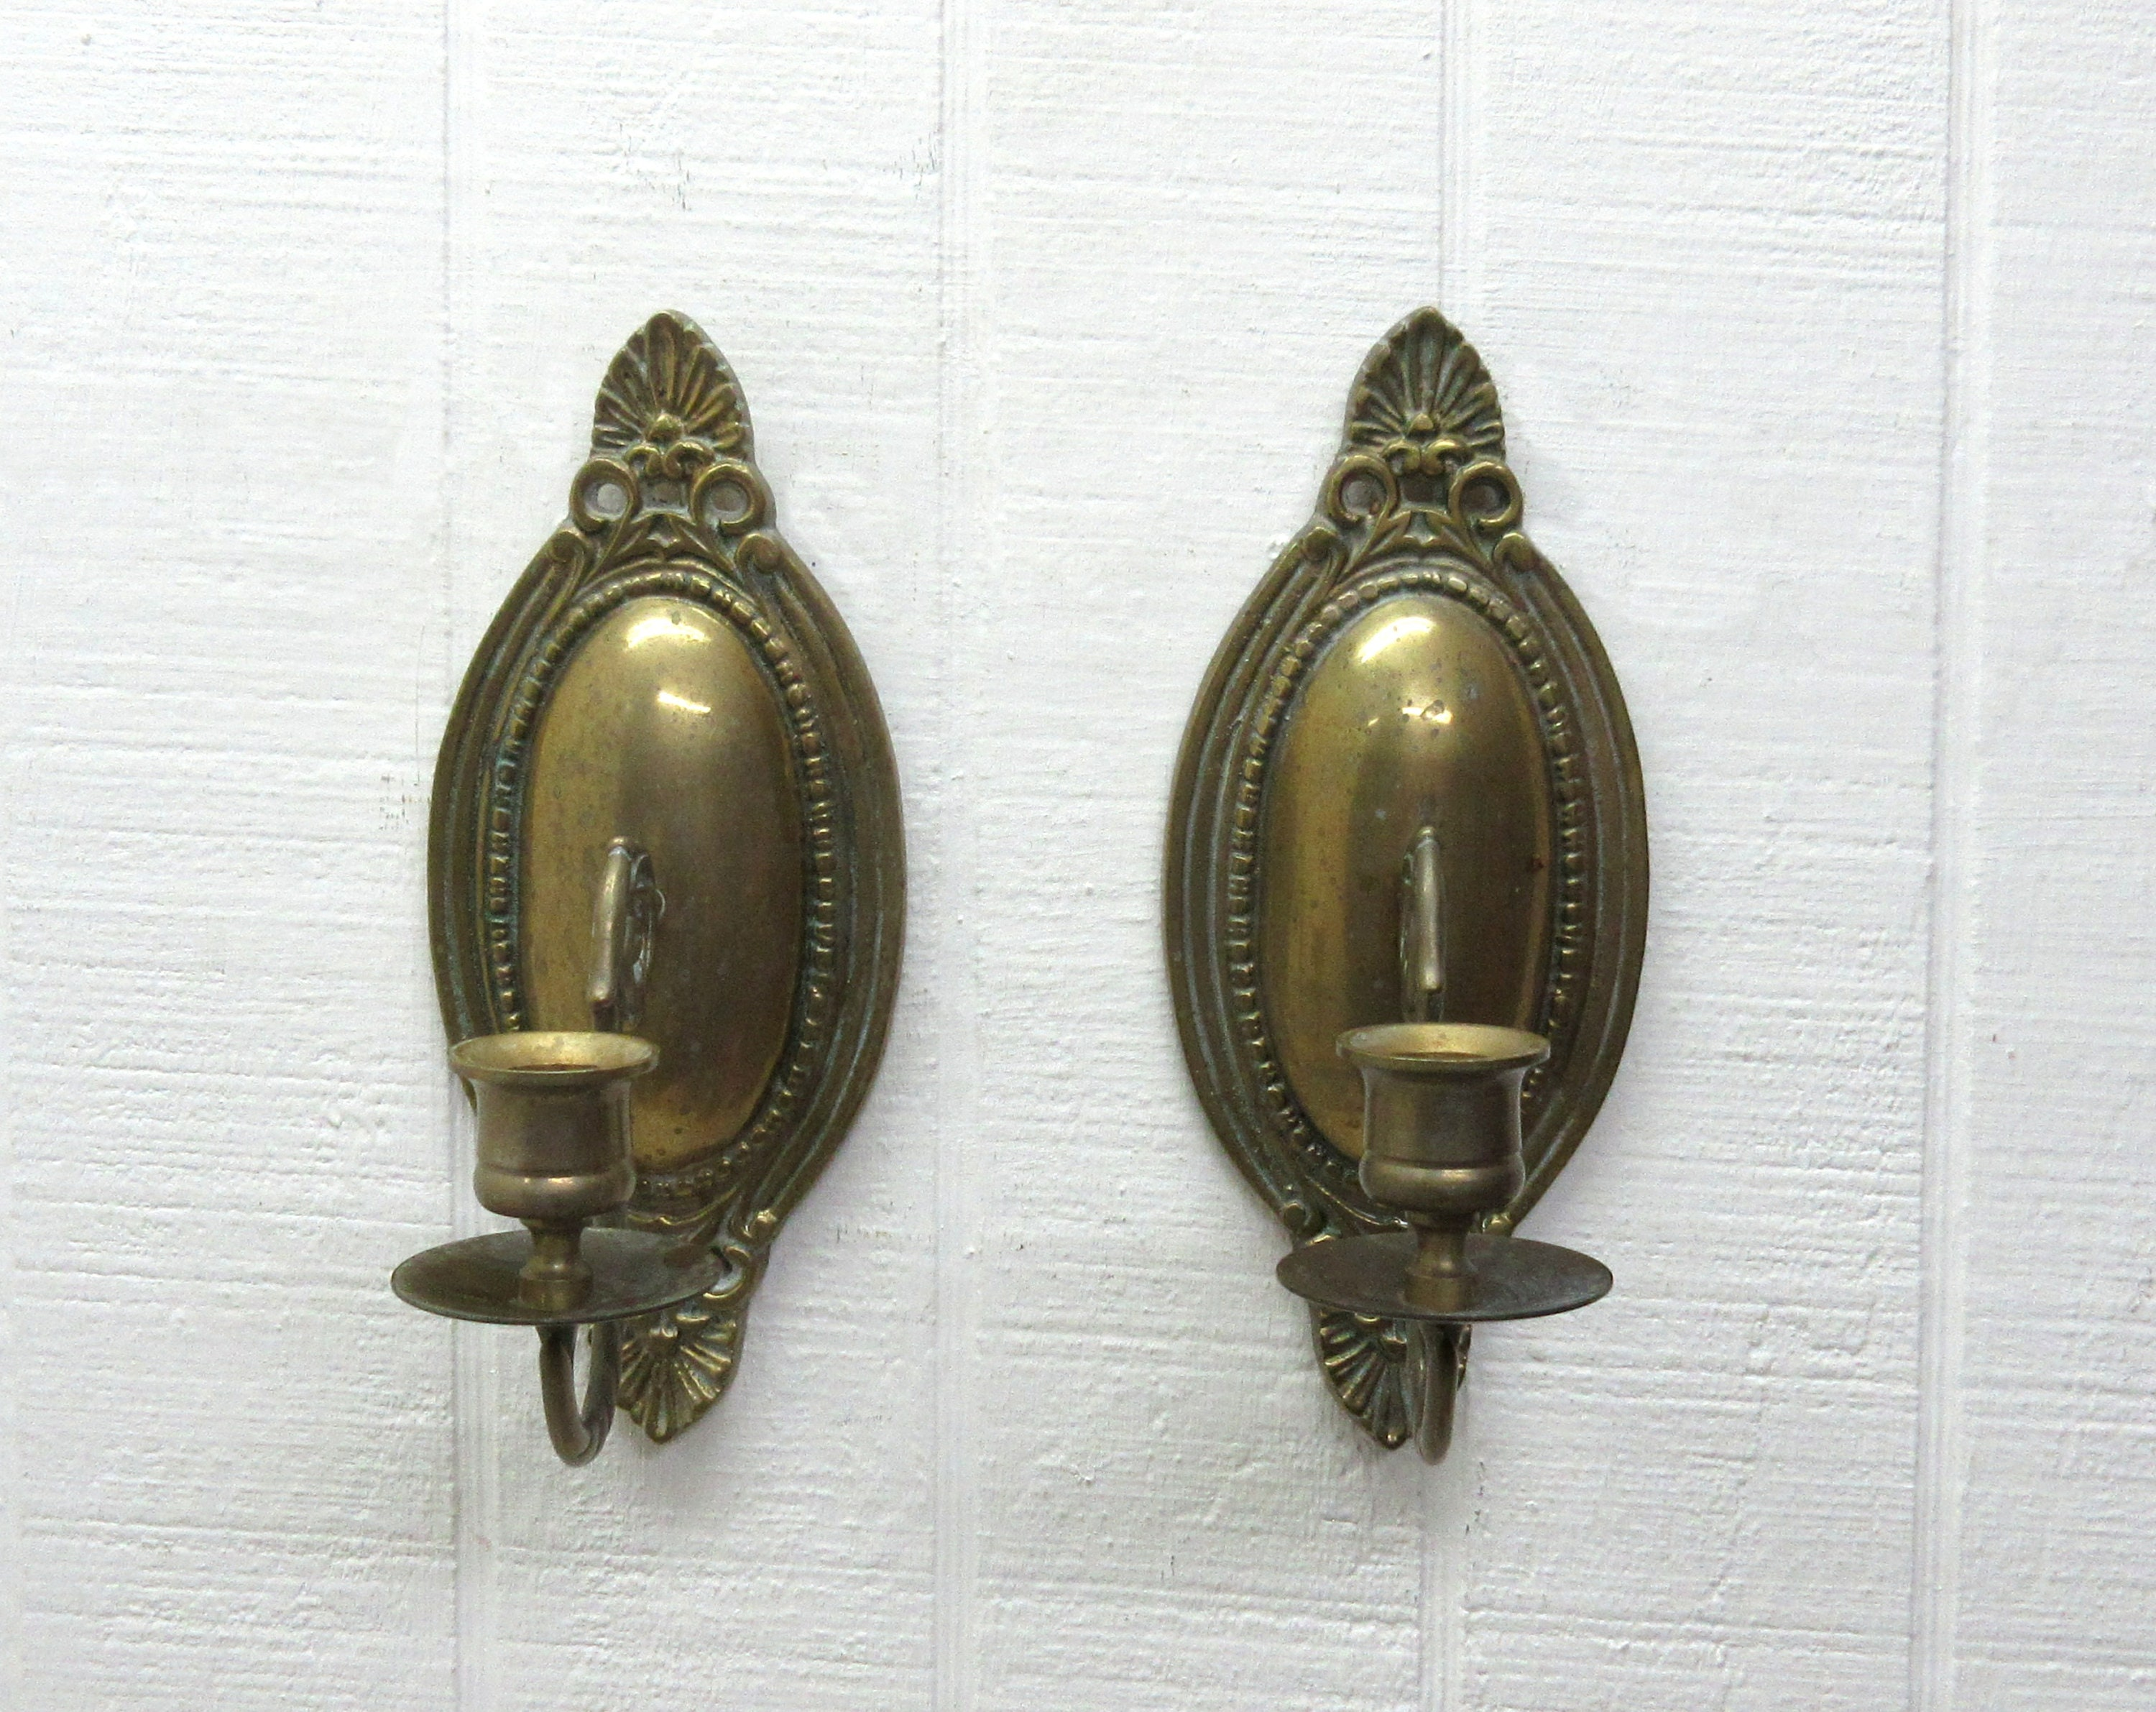 Vintage Brass Wall Sconce Wall Mount Taper Candle Holder